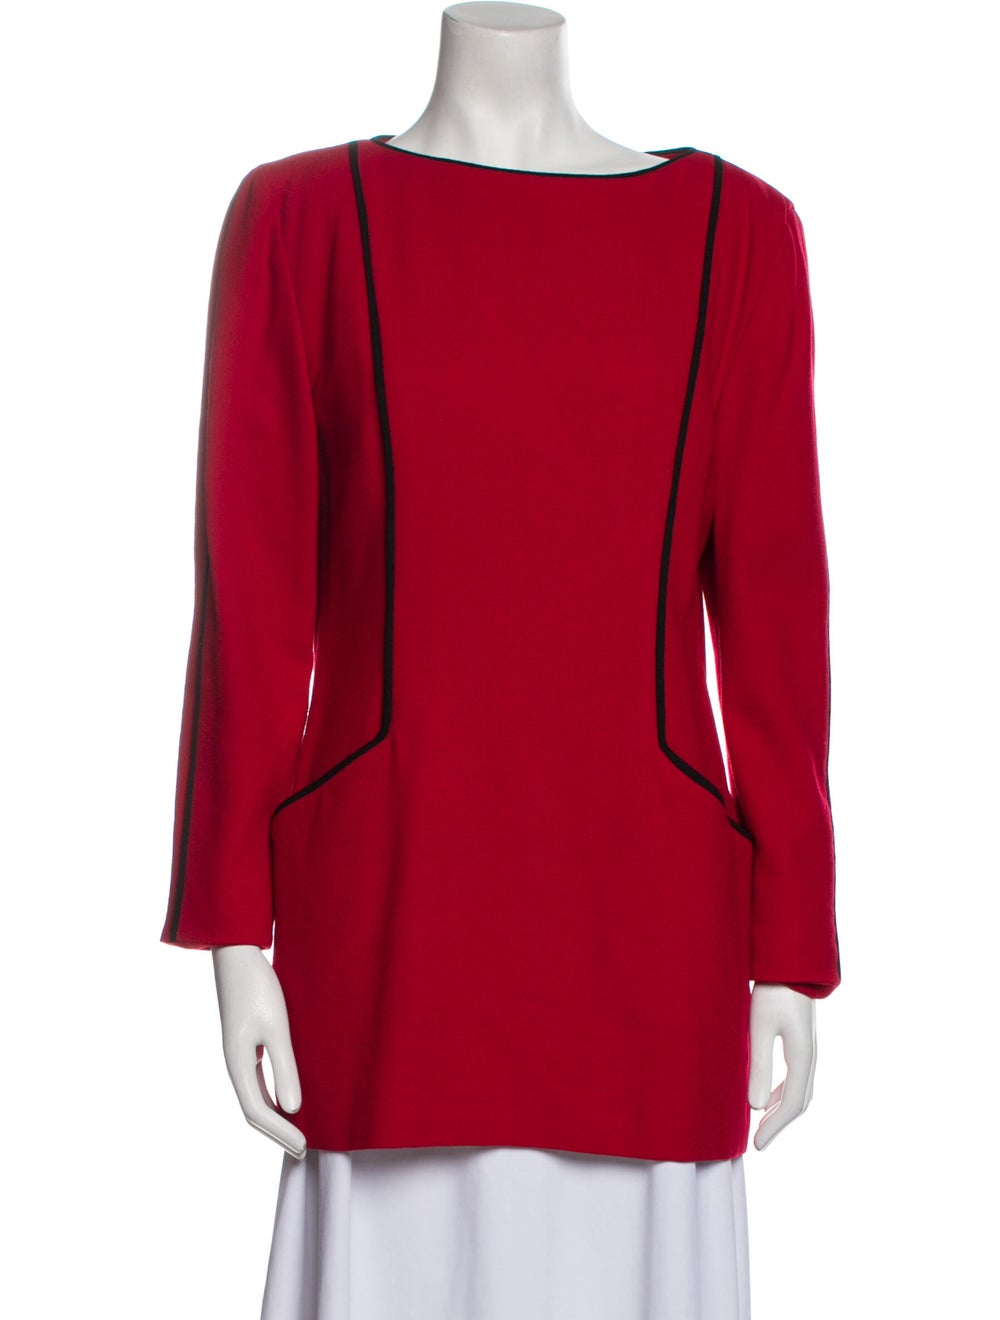 Arnold Scaasi Vintage 1980's Tunic Red - image 1